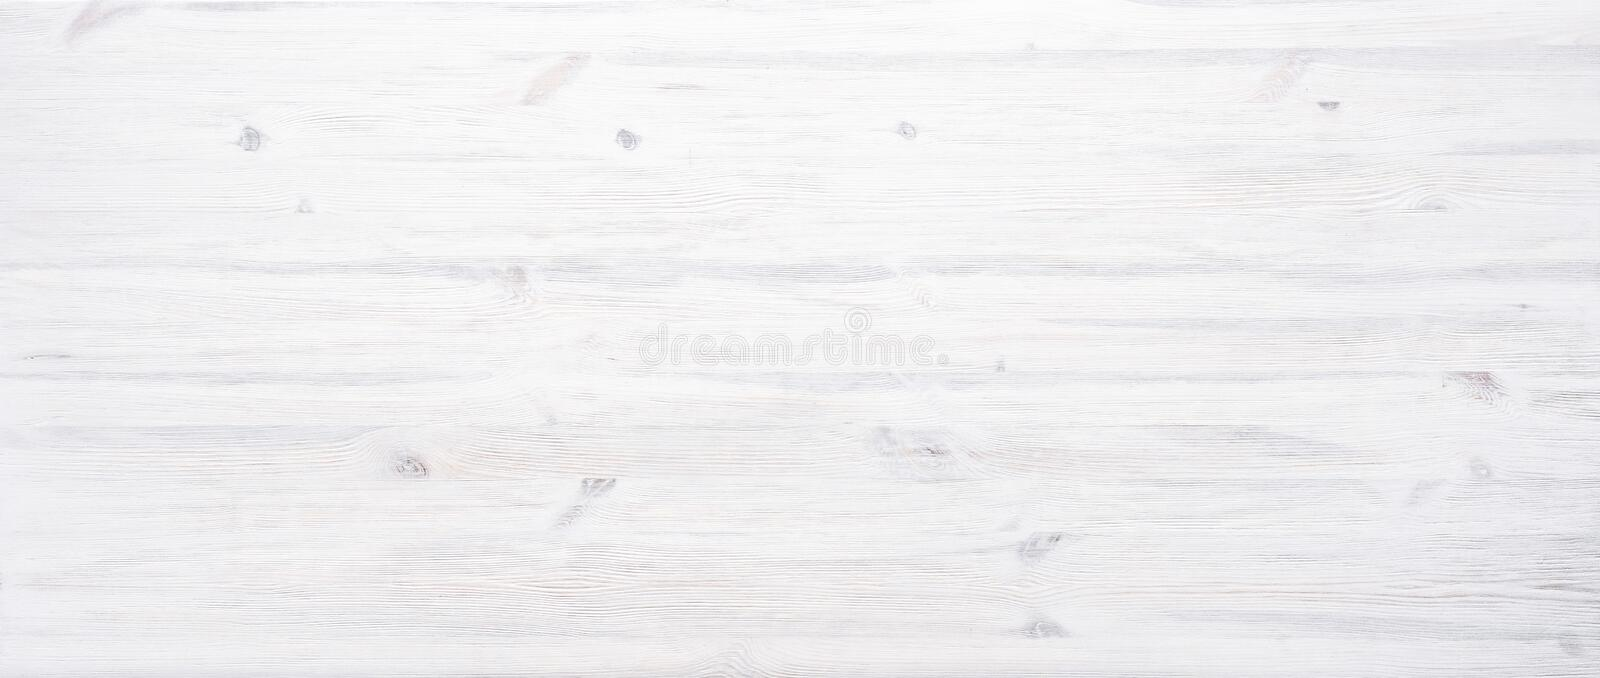 White painted wooden texture desk background table banner design header stock photography